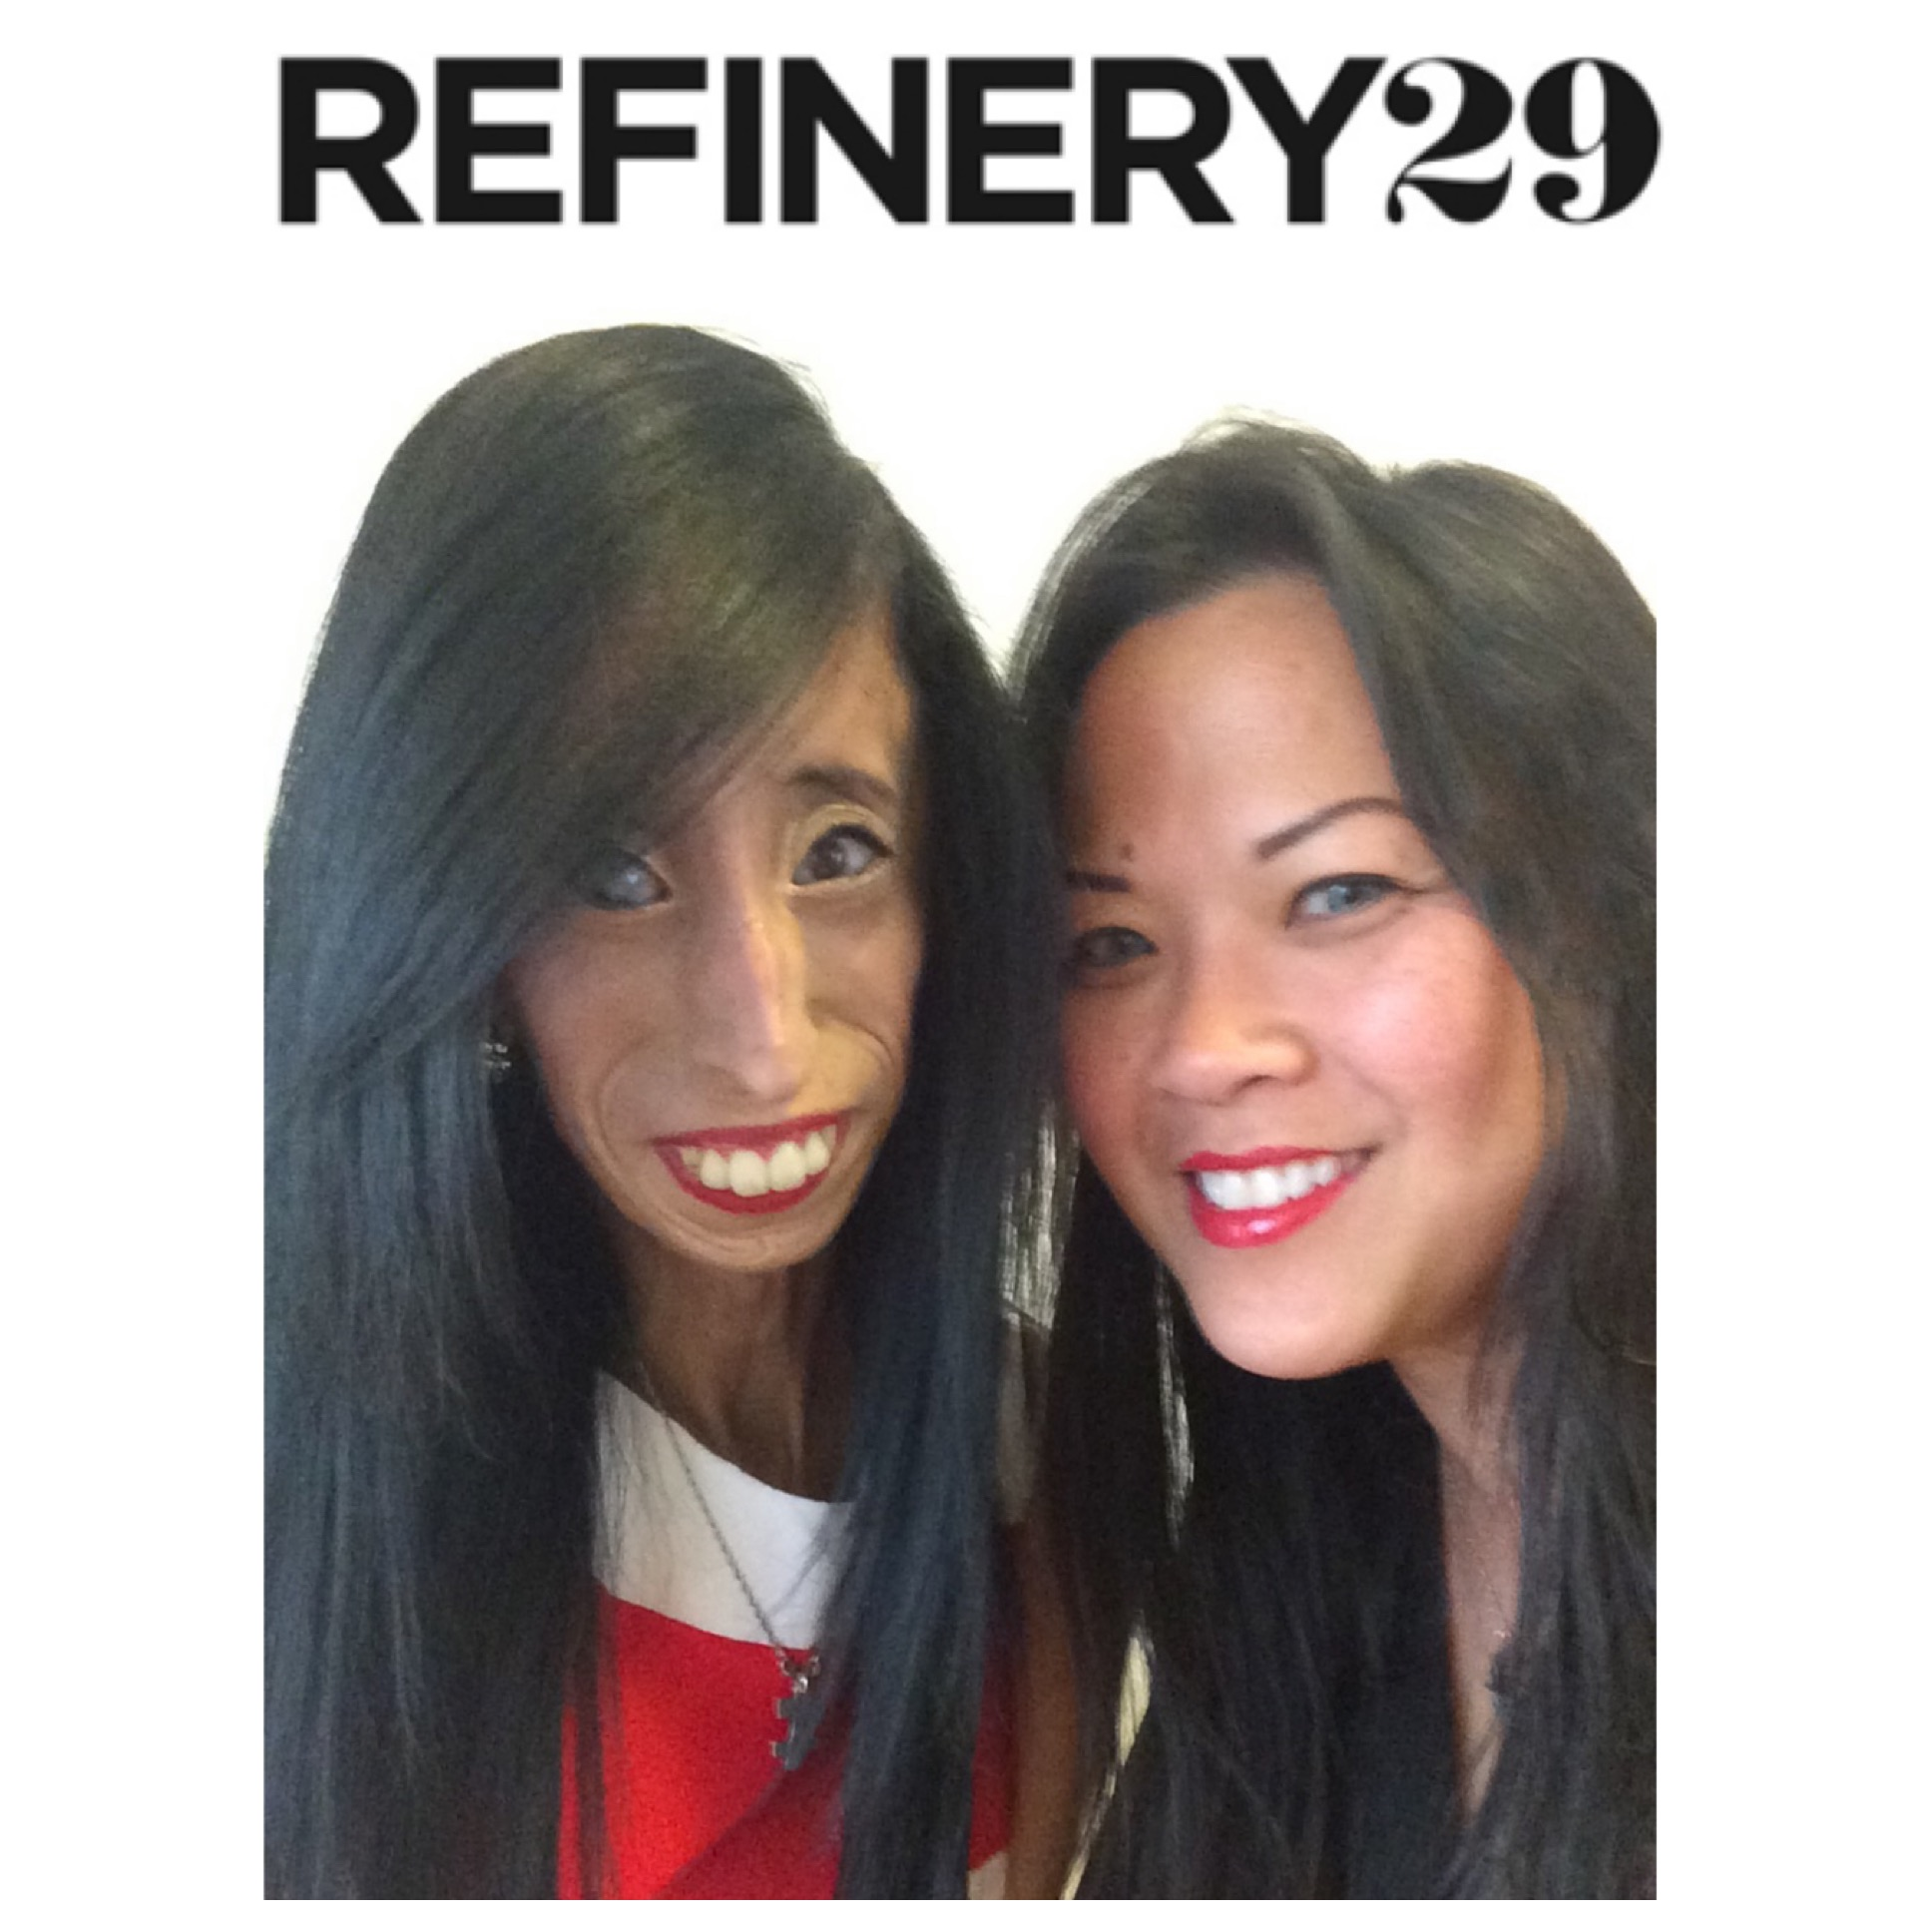 - (Refinery29, December 2, 2015)After Being Called 'The World's Ugliest Woman,' She's Teaching Us All Something About The Danger Of JudgementLizzie Velasquez, who suffers from a rare condition that prevents her from gaining weight, is a vlogger whose YouTube Channel has over 450,000 subscribers. While we spoke, Velasquez's mother, Rita, was in the room, along with producers Jessica Chou and Ngoc Nguyen. Velasquez cited the women present when asked who inspires her. (Full Article.)